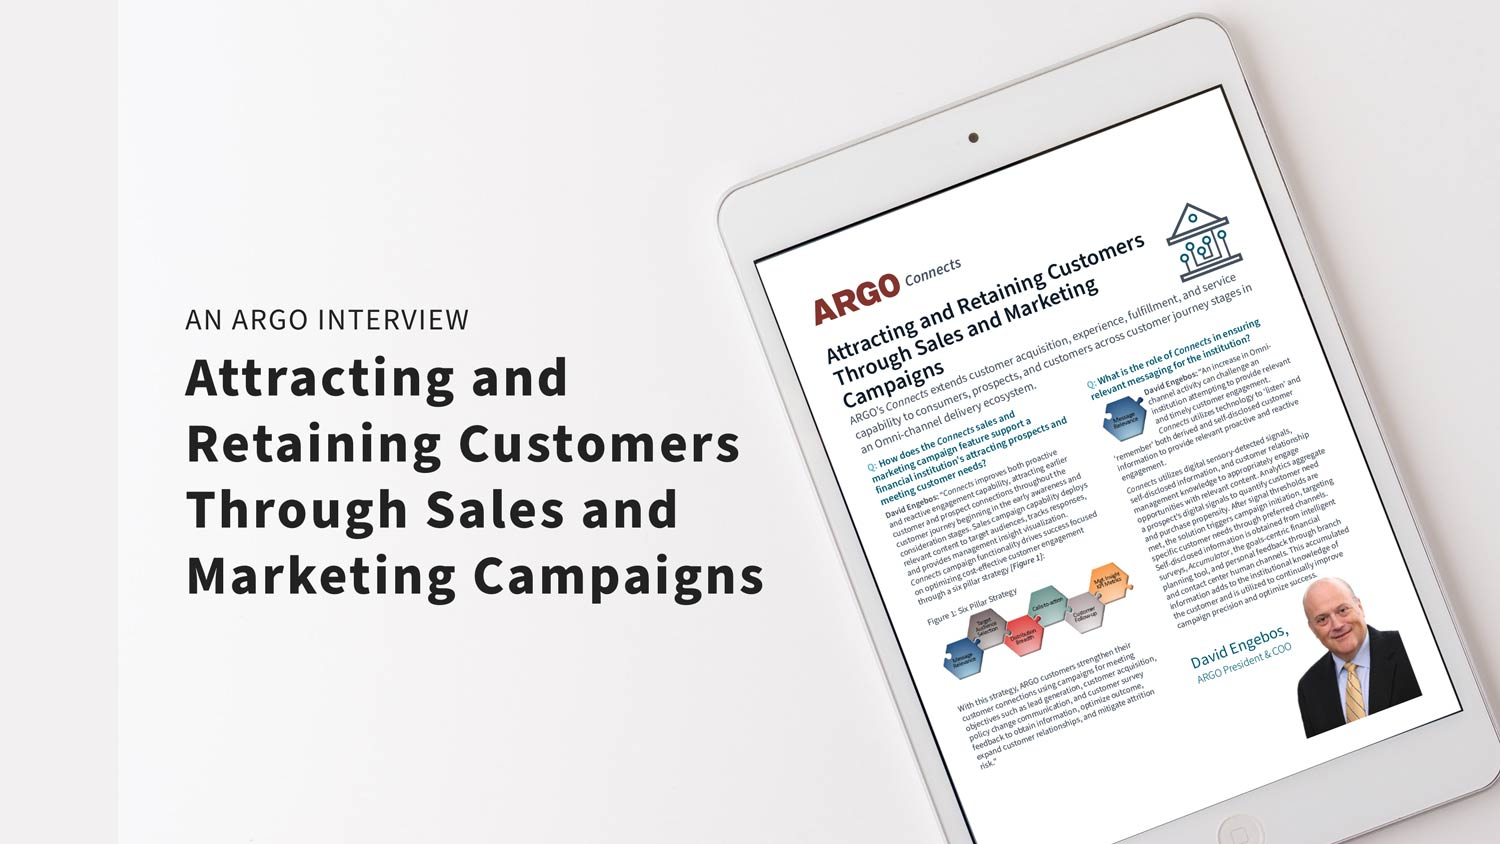 Attracting-and-Retaining-Customers-Through-Sales-and-Marketing-Campaigns